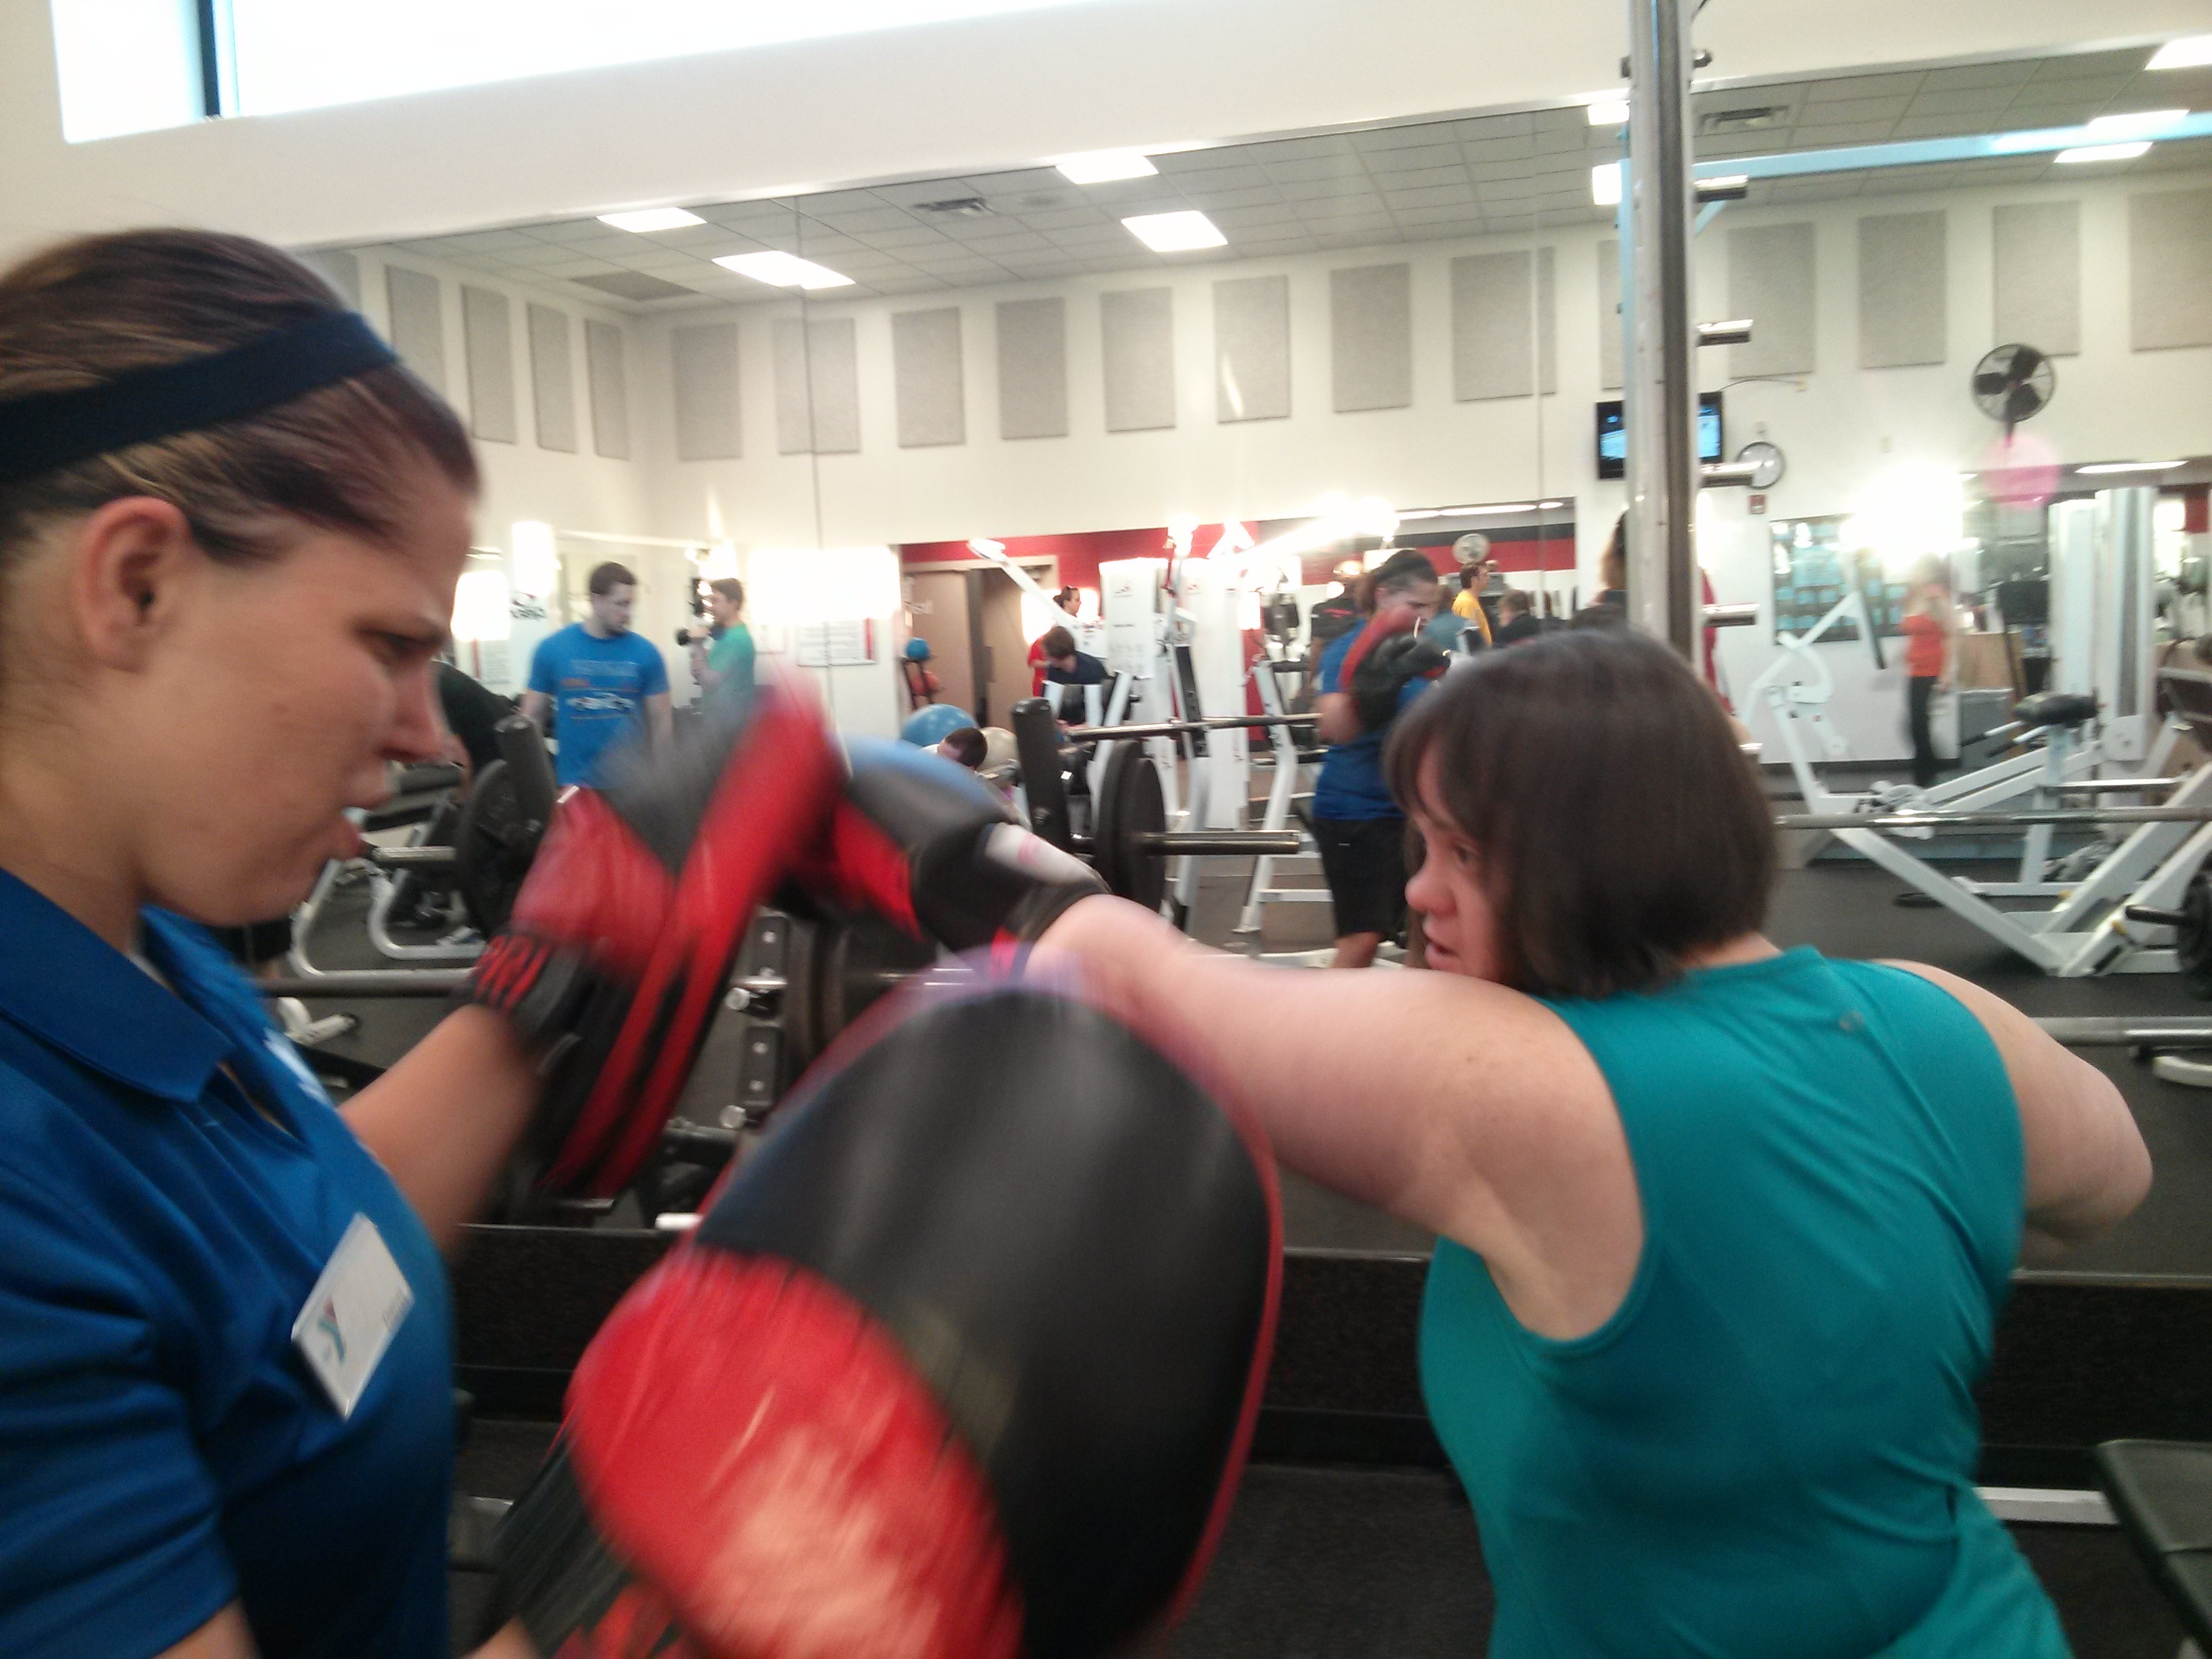 Peggy working out with her trainer. Photo © 2014 Marisa Helms